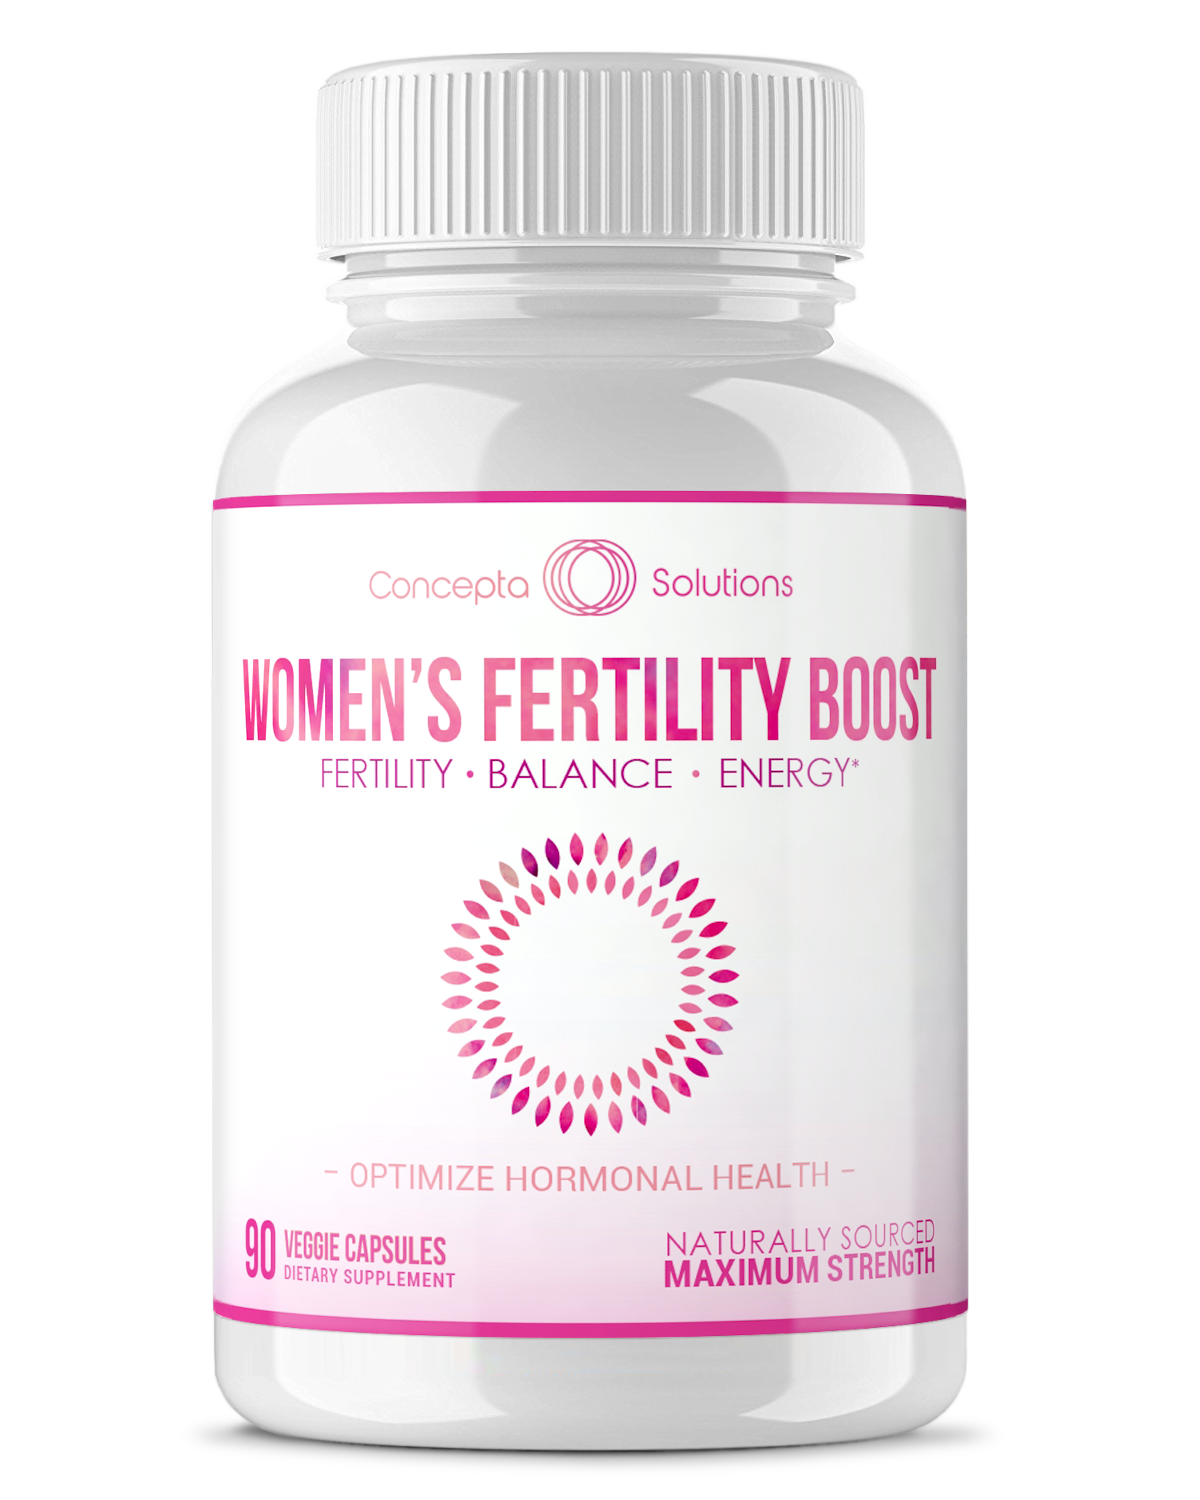 Improves Ovulation and Egg Quality